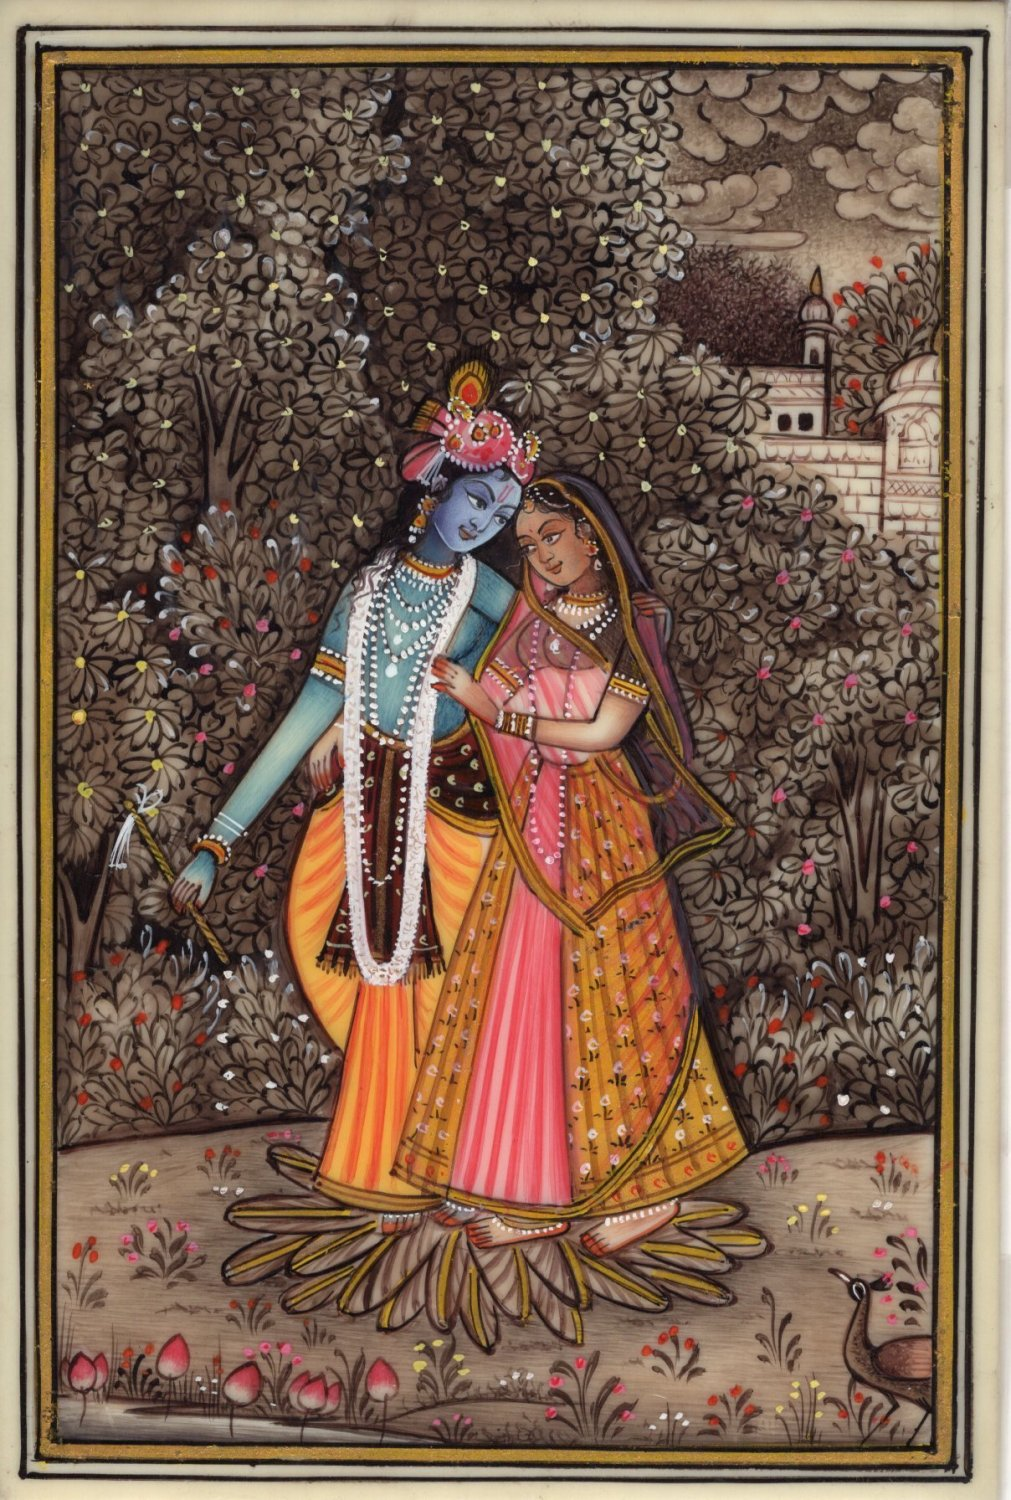 Hindu Miniature Radha Krishna Painting Handmade Indian Religious Home Decor Art